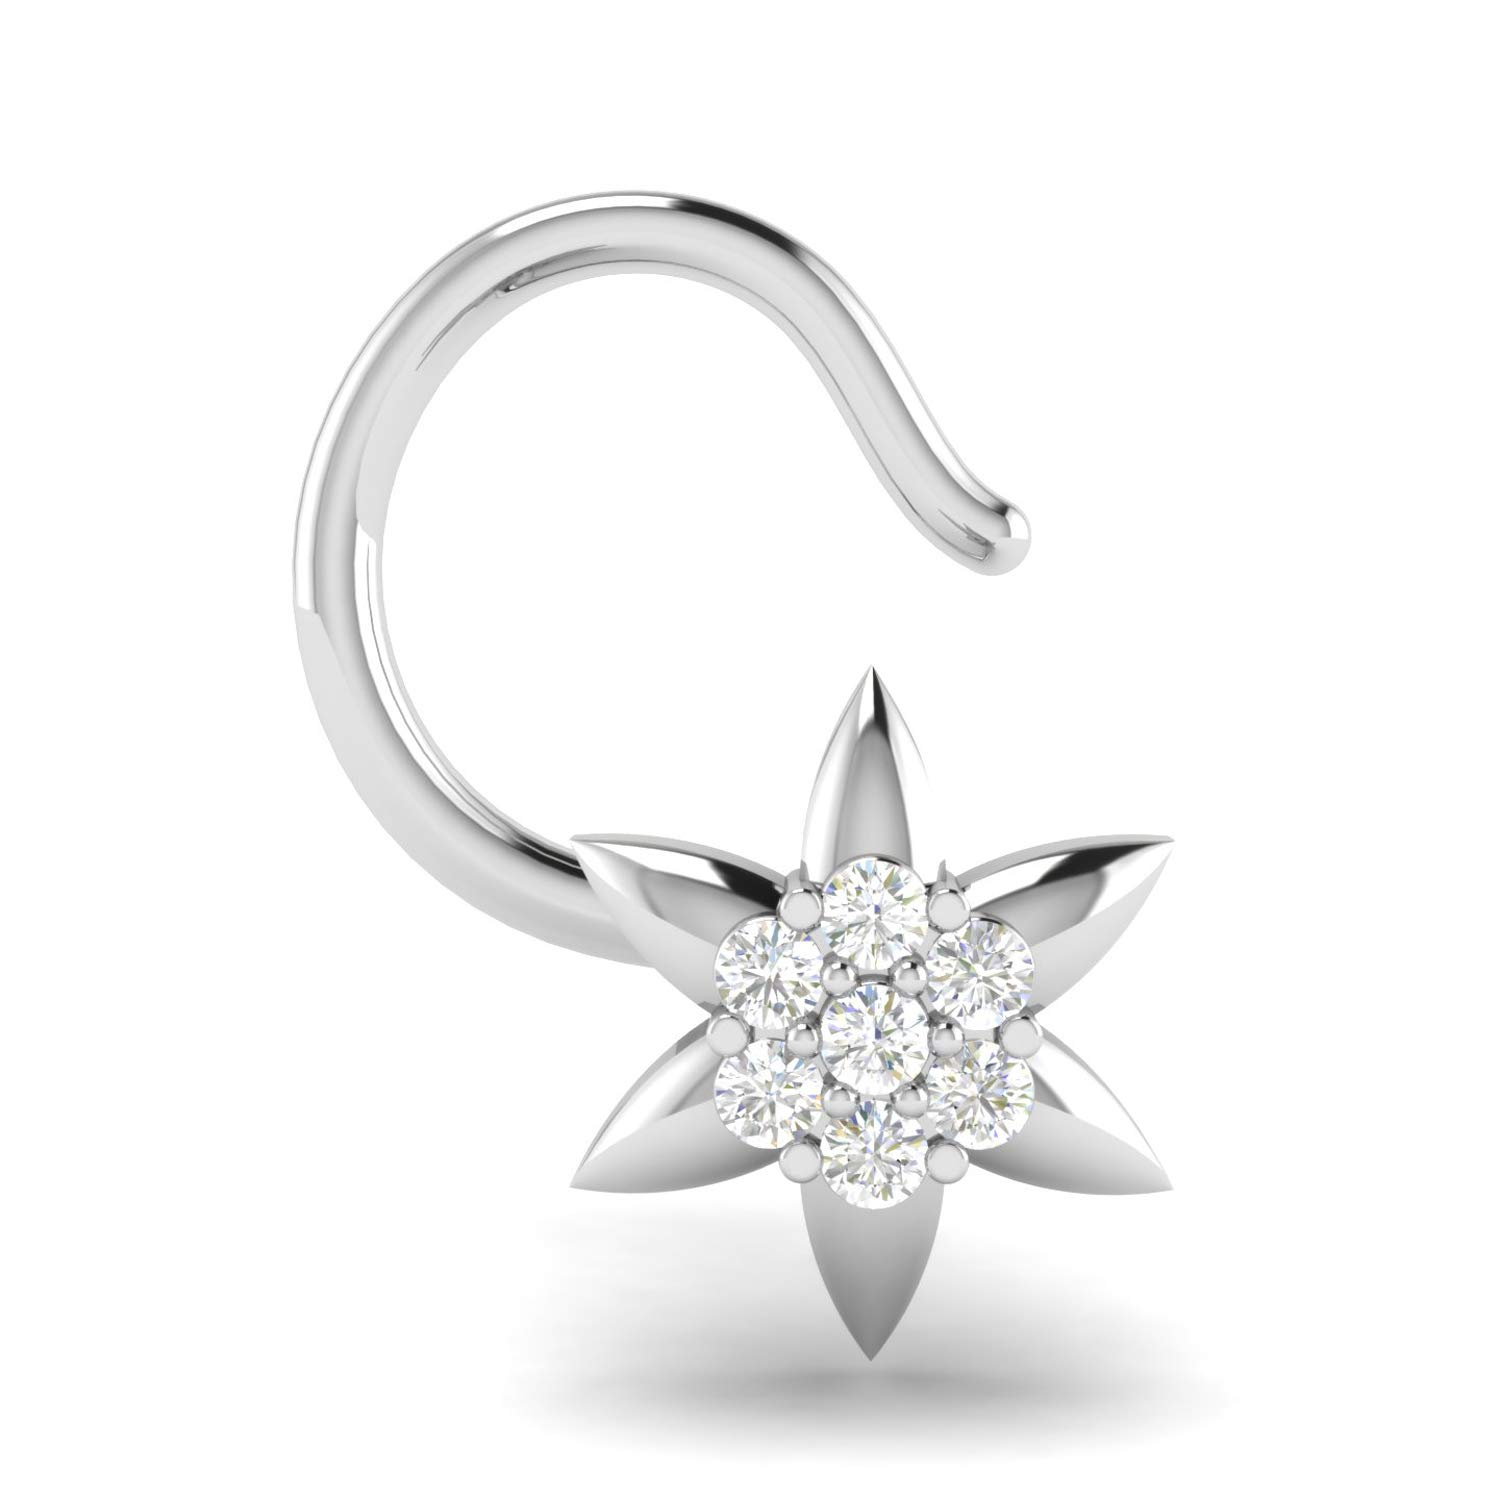 Buy Avsar 18kt White Gold And Diamond Nose Ring For Women At Amazon In